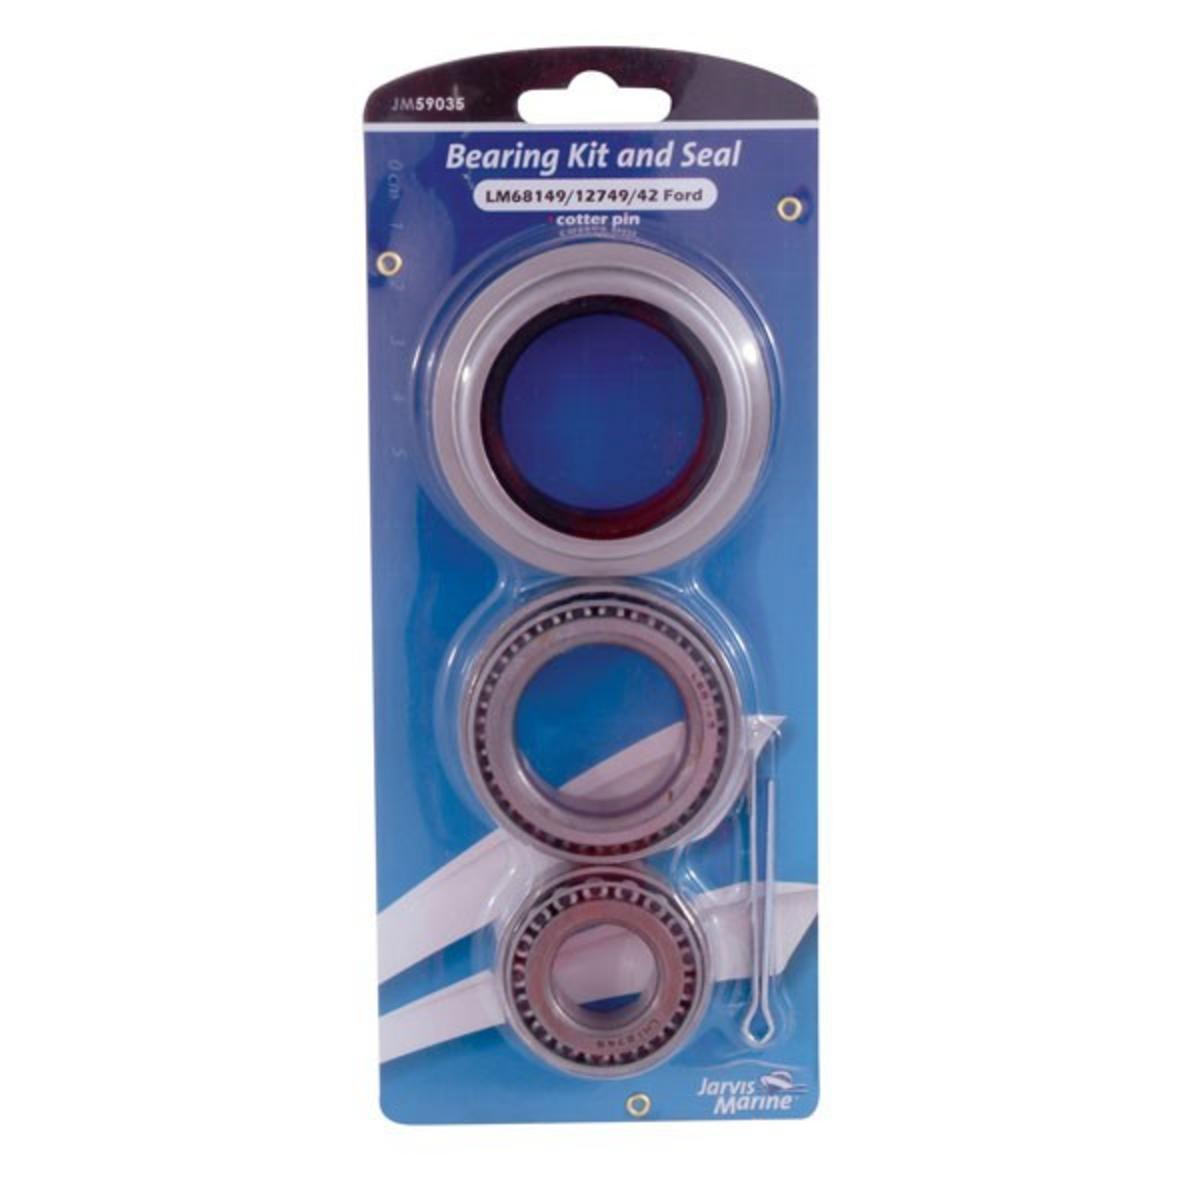 JARVIS MARINE BEARING KIT AND SEAL